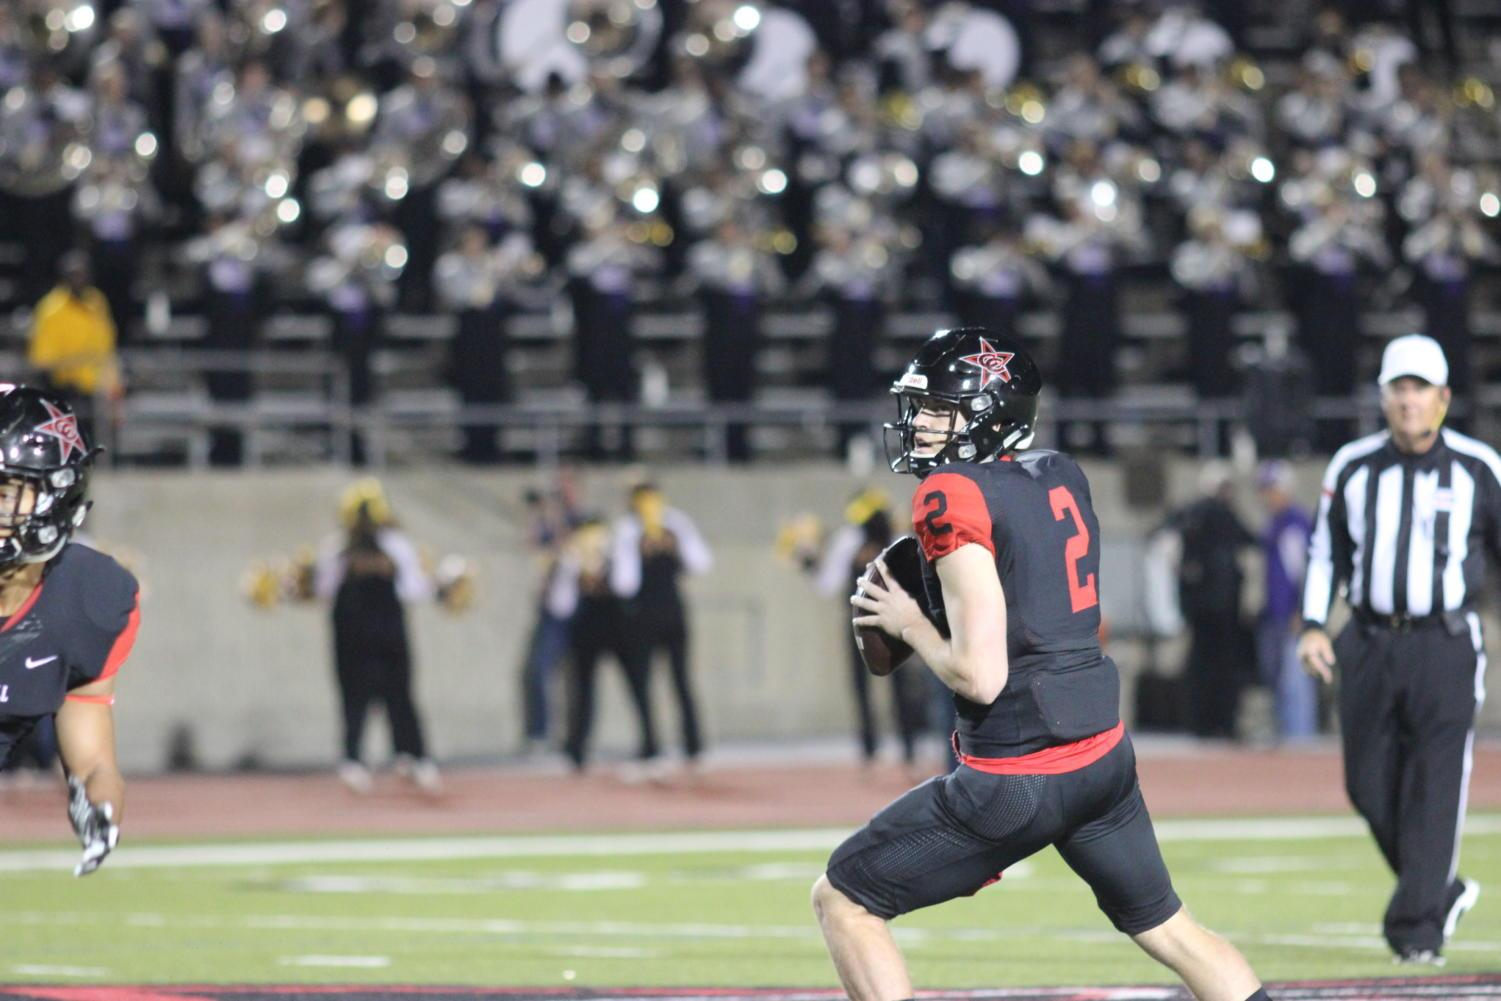 Coppell+Cowboys+senior+quarterback+Brady+McBride+gets+ready+to+pass+during+the+first+quarter+on+Nov.+10+at+Buddy+Echols+Field.+The+Coppell+Cowboys+defeated+the+Richardson+Eagles%2C+49-14.+